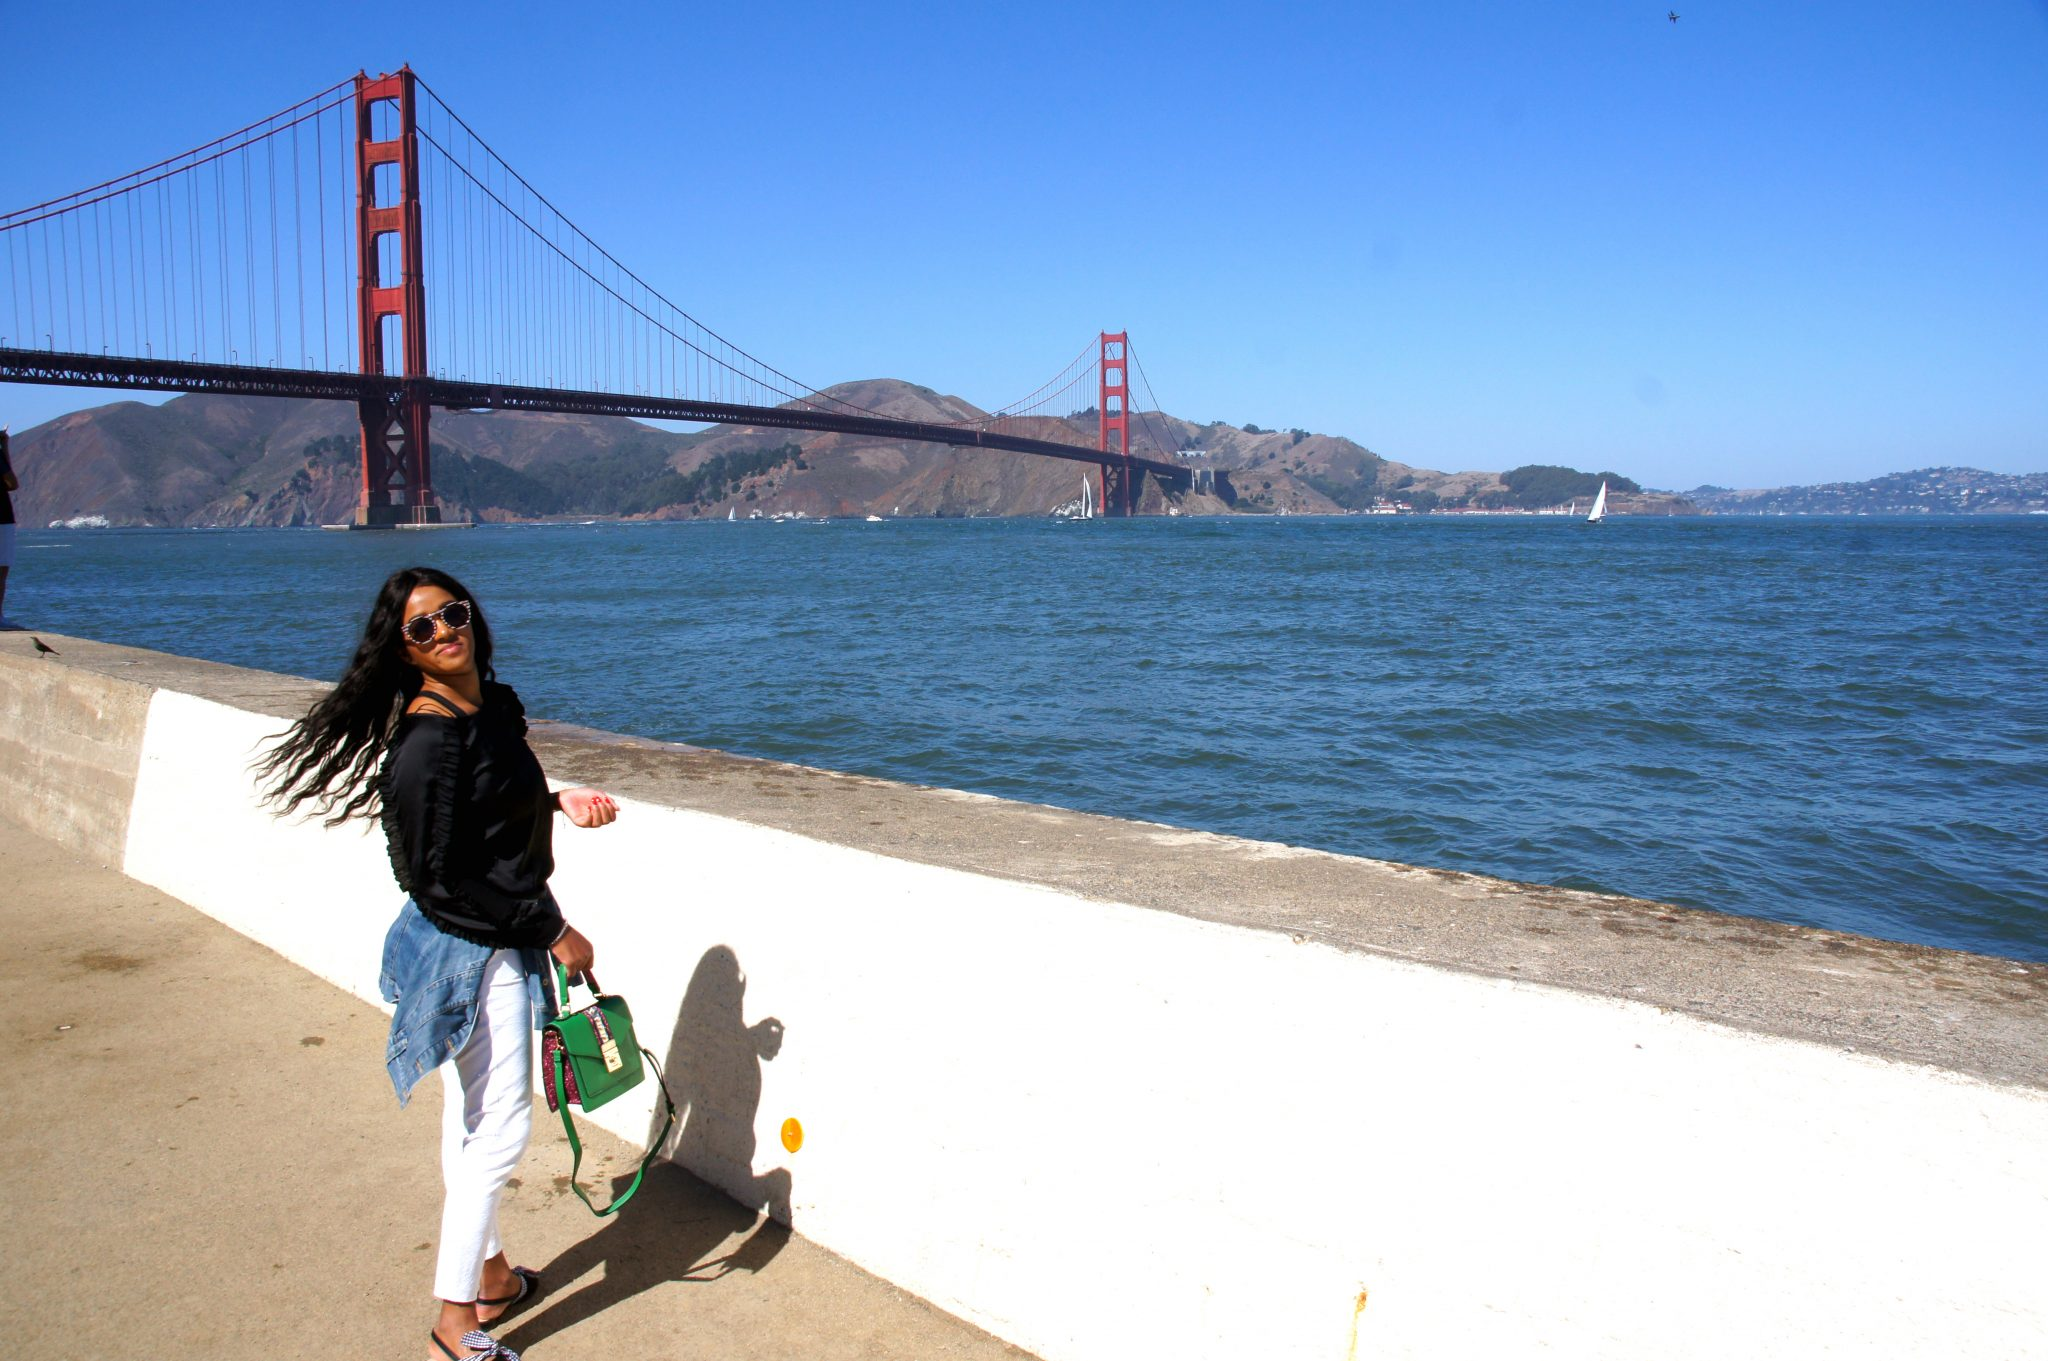 Me with my new Aldo Bag in San Francisco